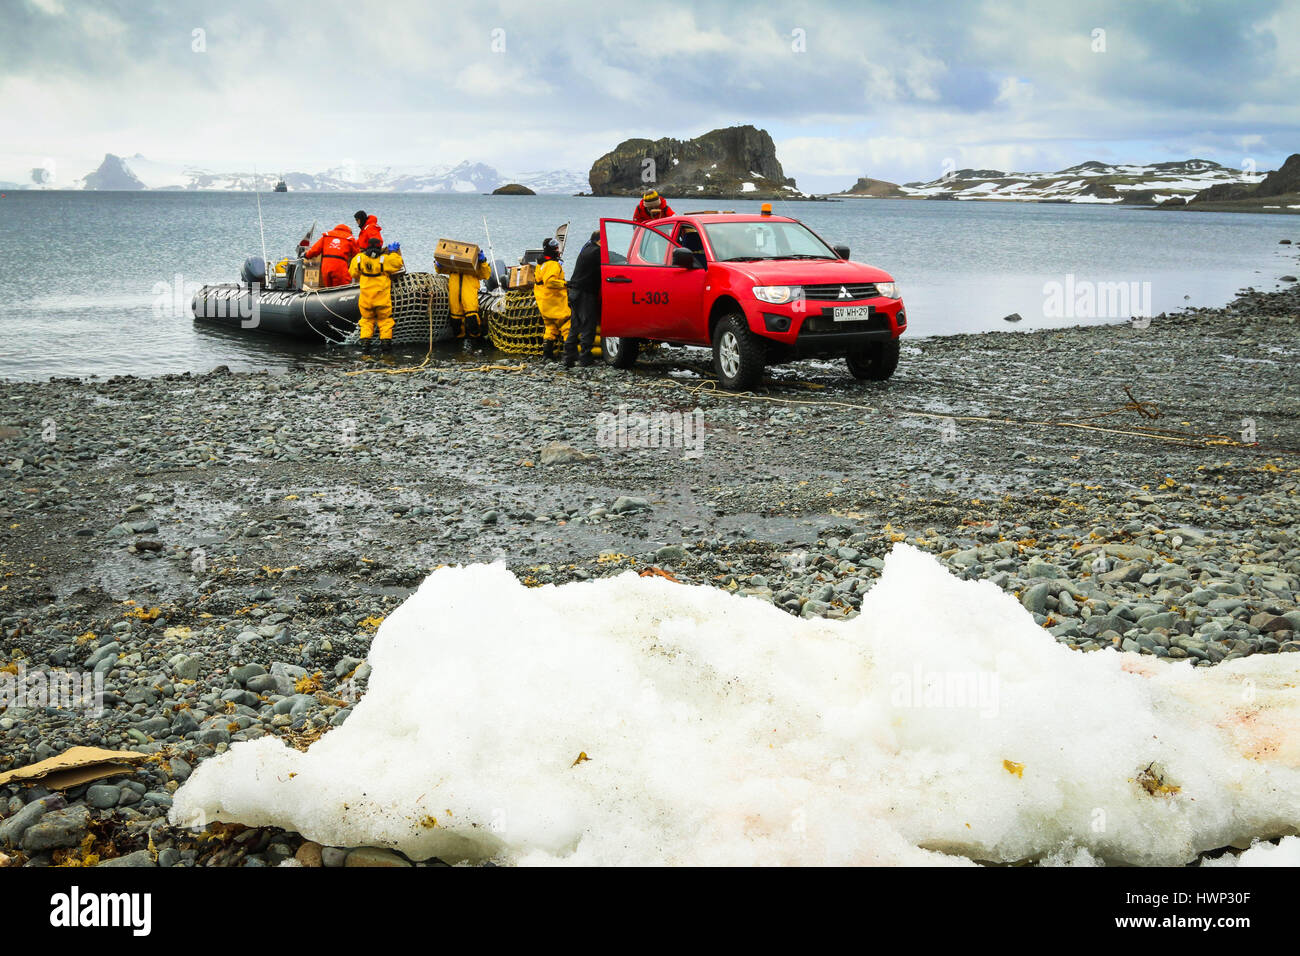 Loading Supplies Stock Photos Images Alamy Simple Choc Block Supply By L200 Stores And Being Loaded Onto Rigid Inflatable Boats From Mitsubishi Pickup Truck King